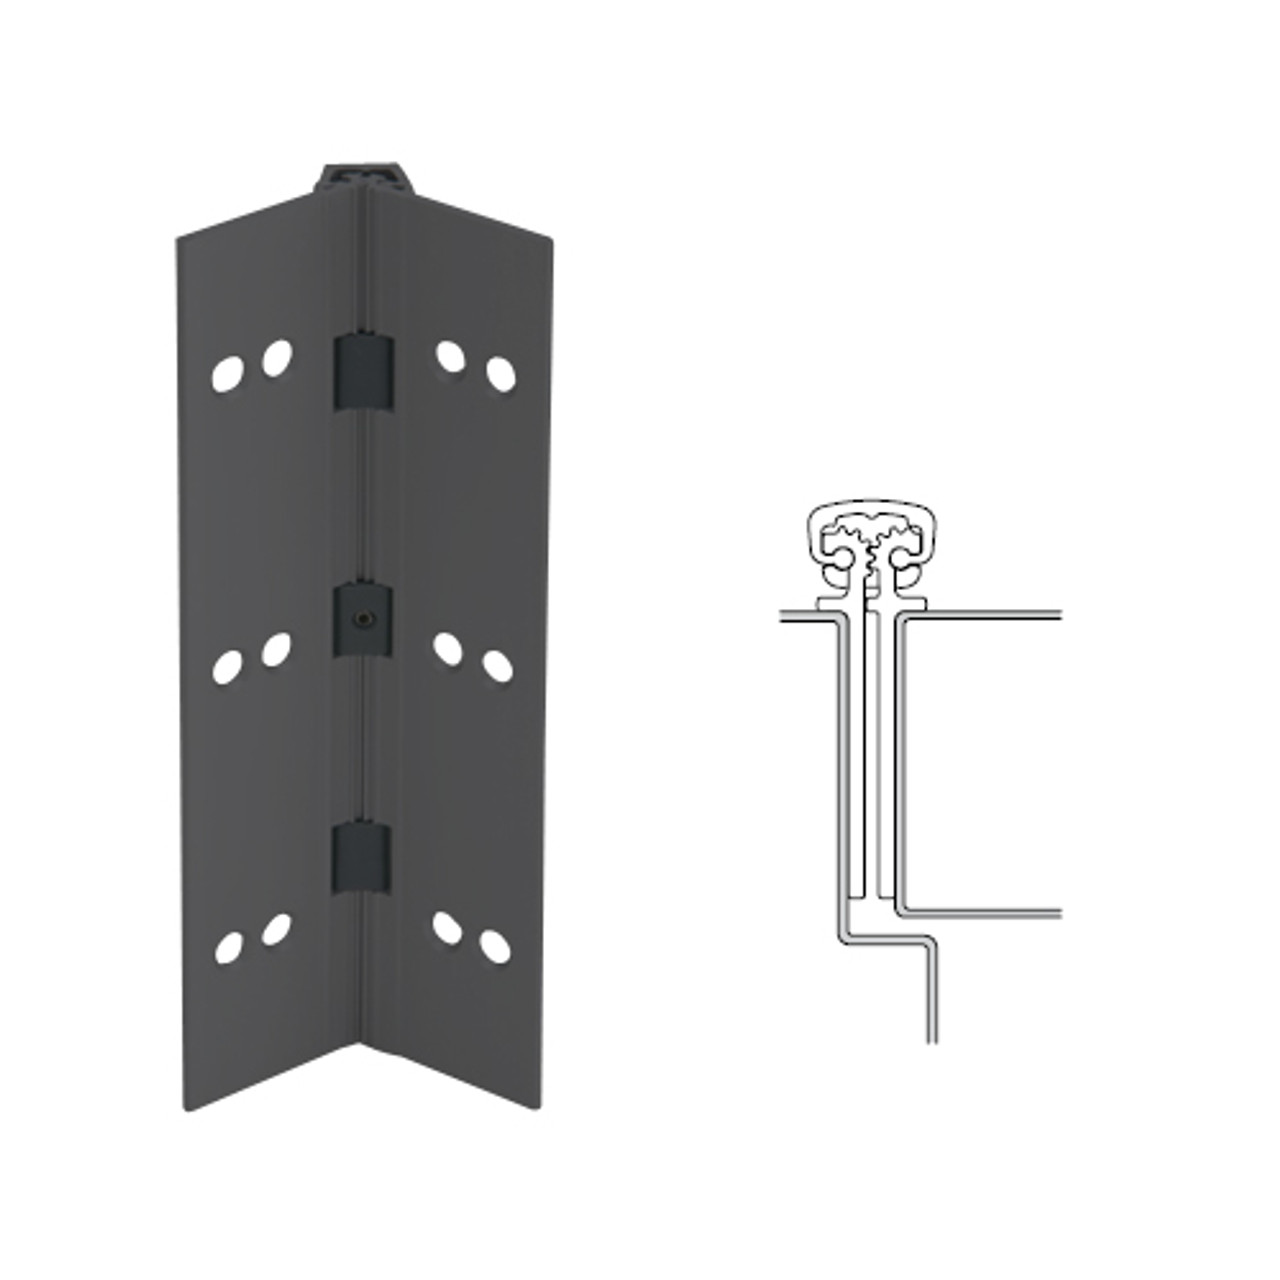 027XY-315AN-85-WD IVES Full Mortise Continuous Geared Hinges with Wood Screws in Anodized Black